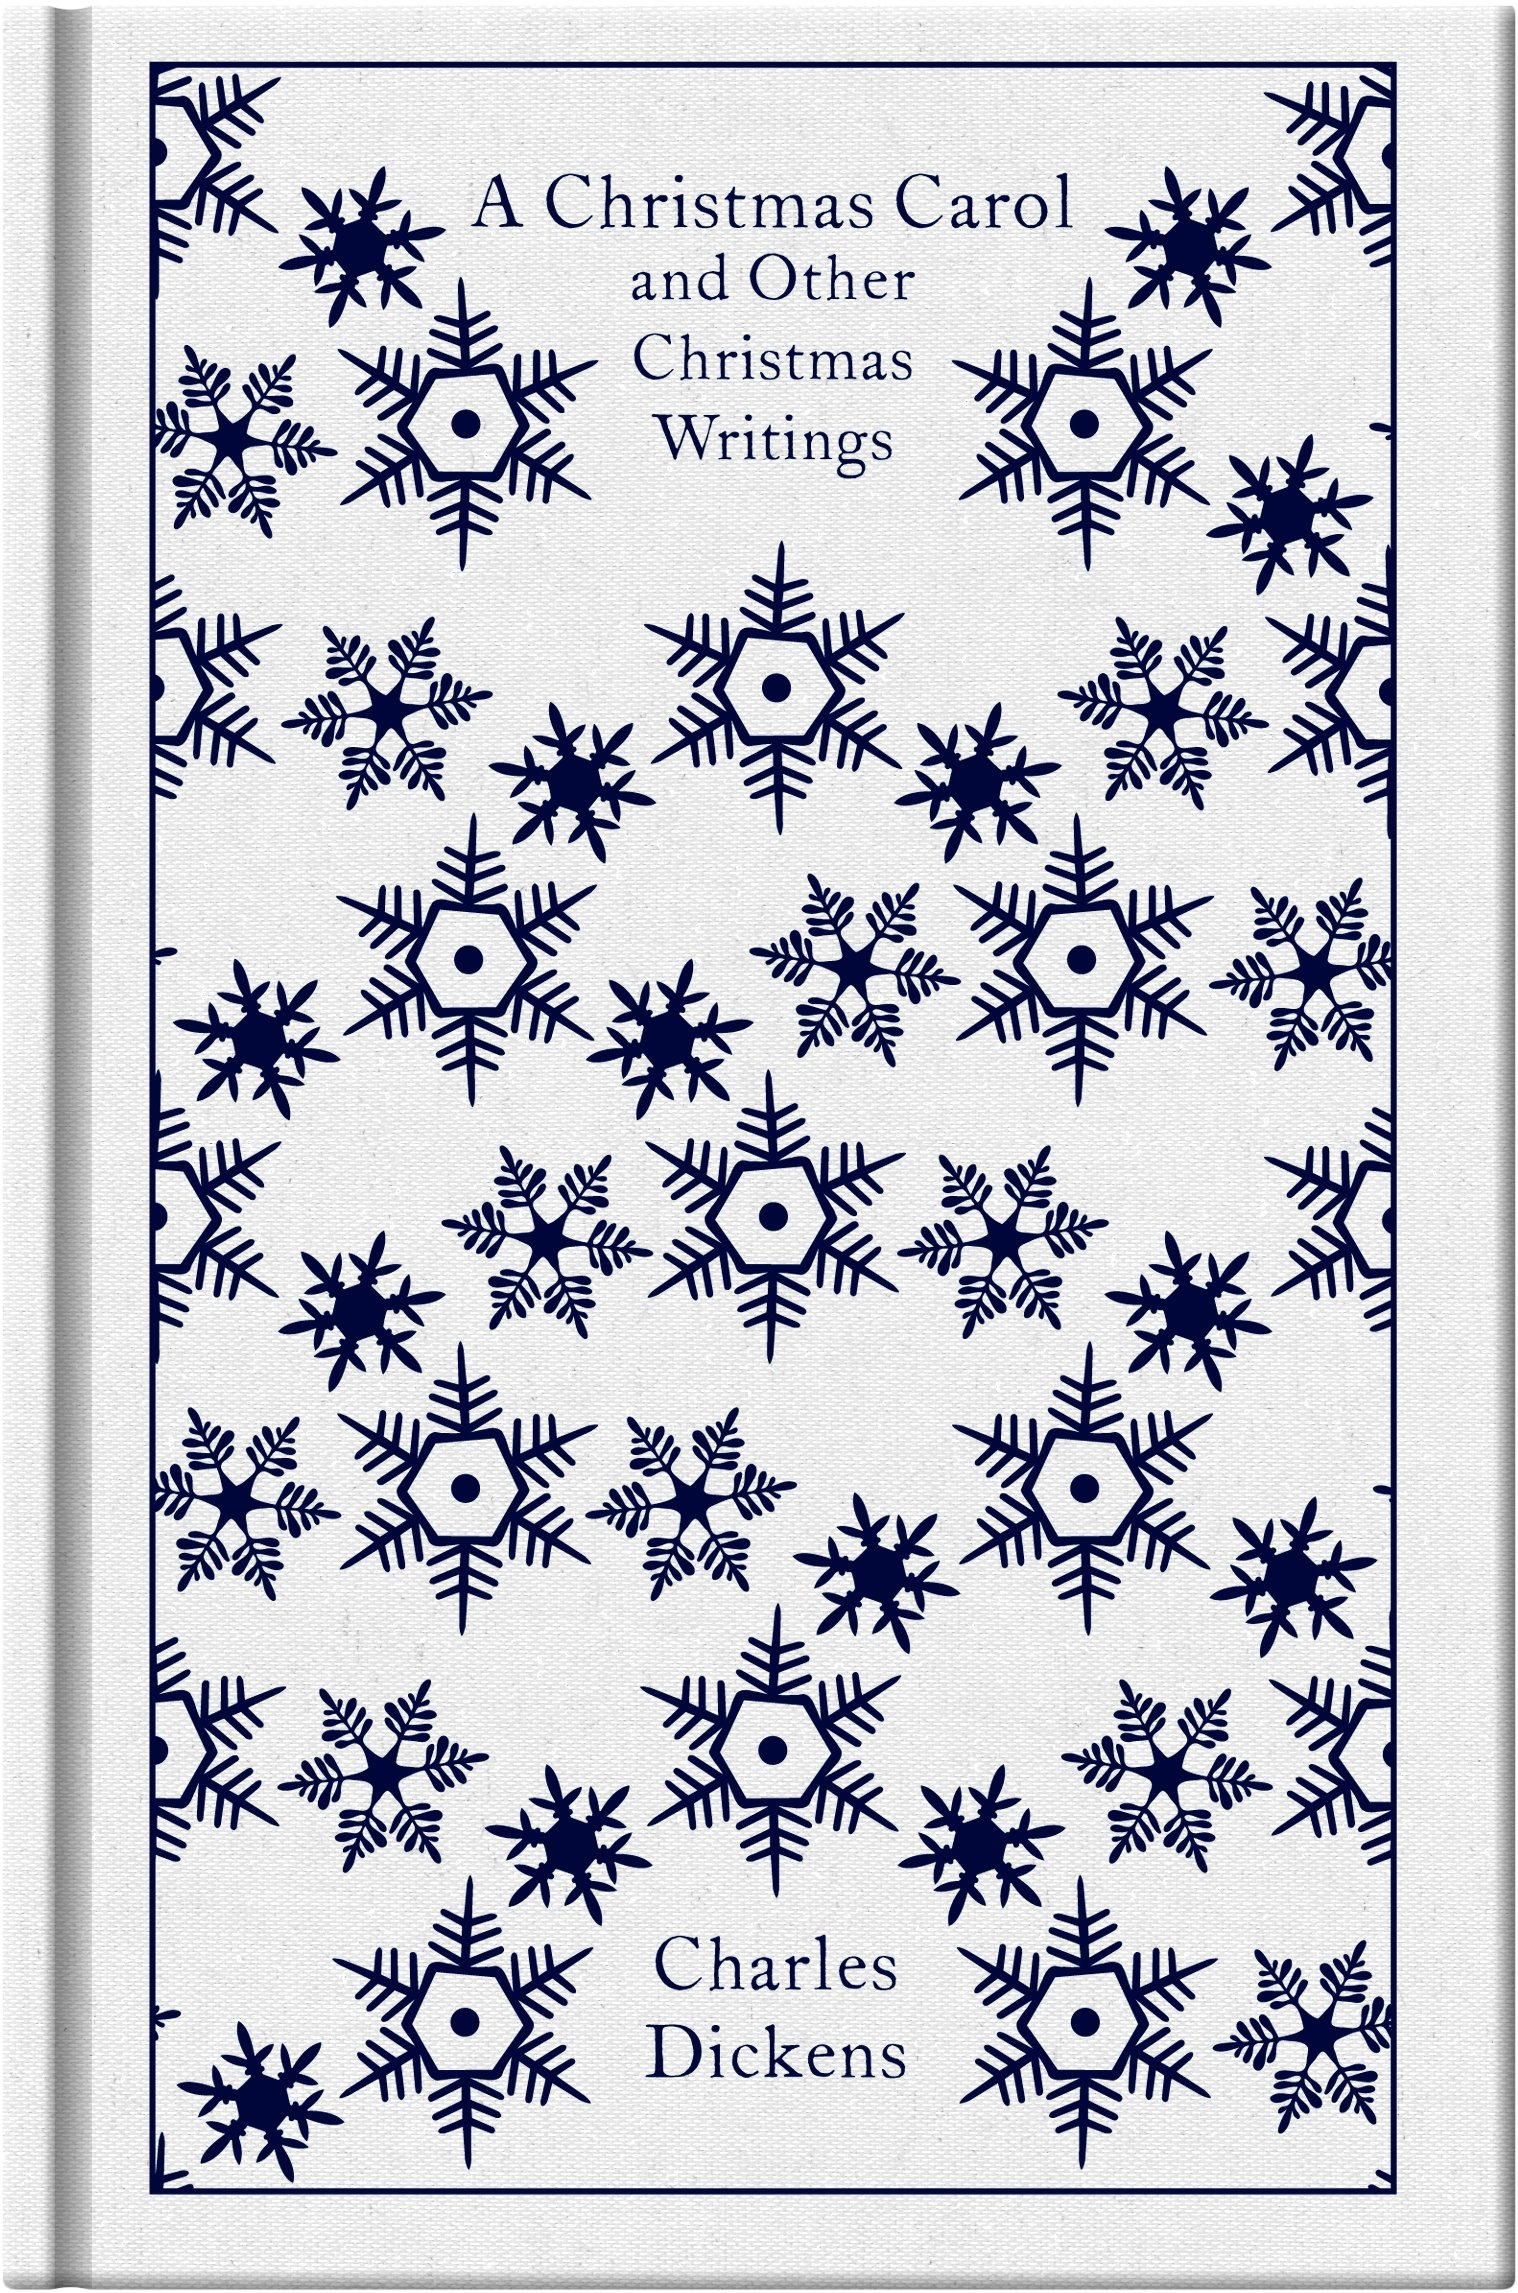 A Christmas Carol and Other Christmas Writings (Penguin Clothbound  Classics): Amazon.co.uk: Dickens, Charles: 9780141195858: Books